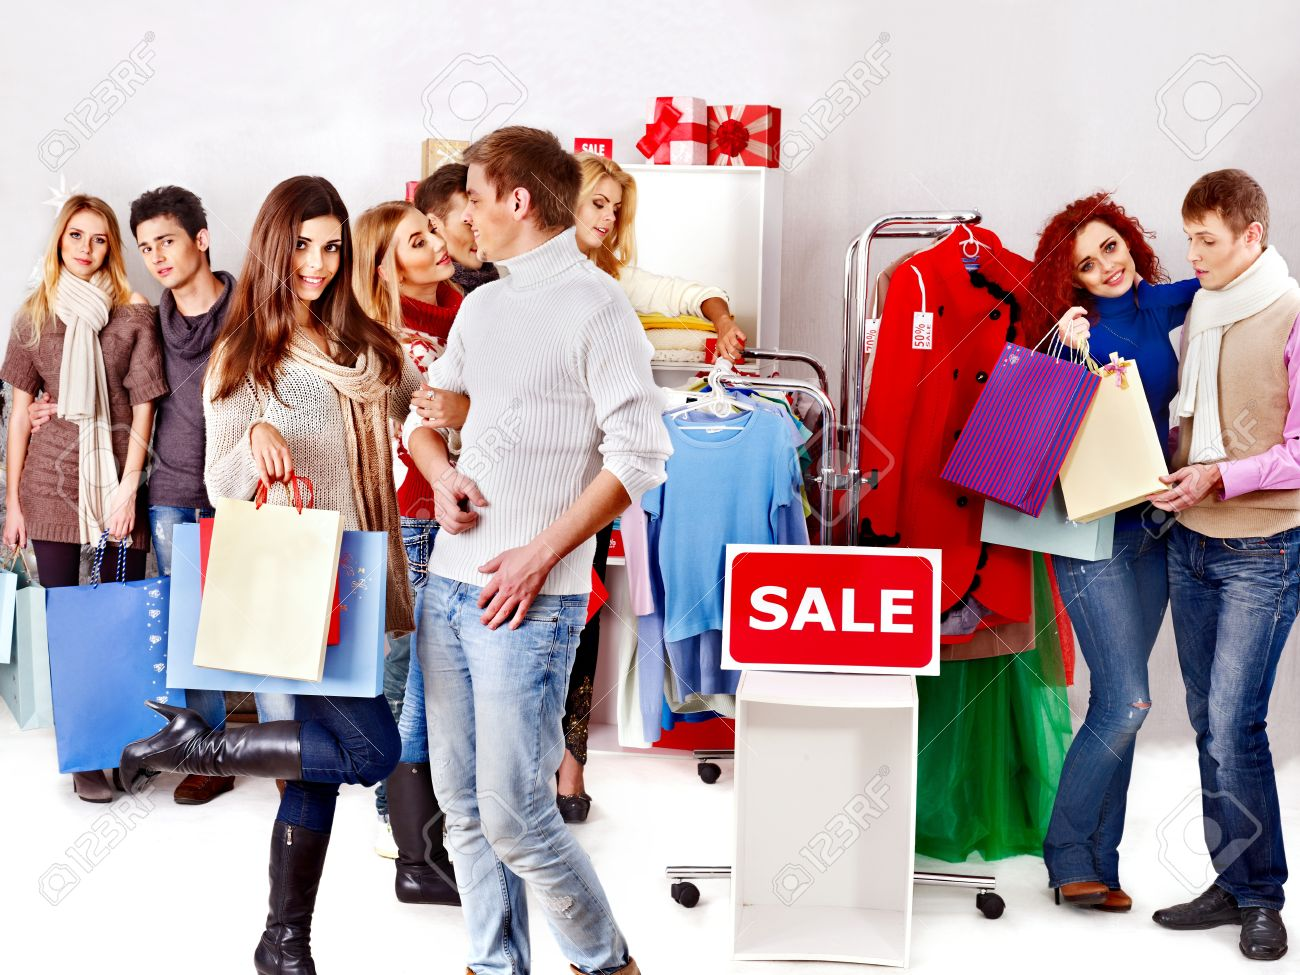 bc19fa0641 Shopping group people at sales in clothing store. Stock Photo - 18636200